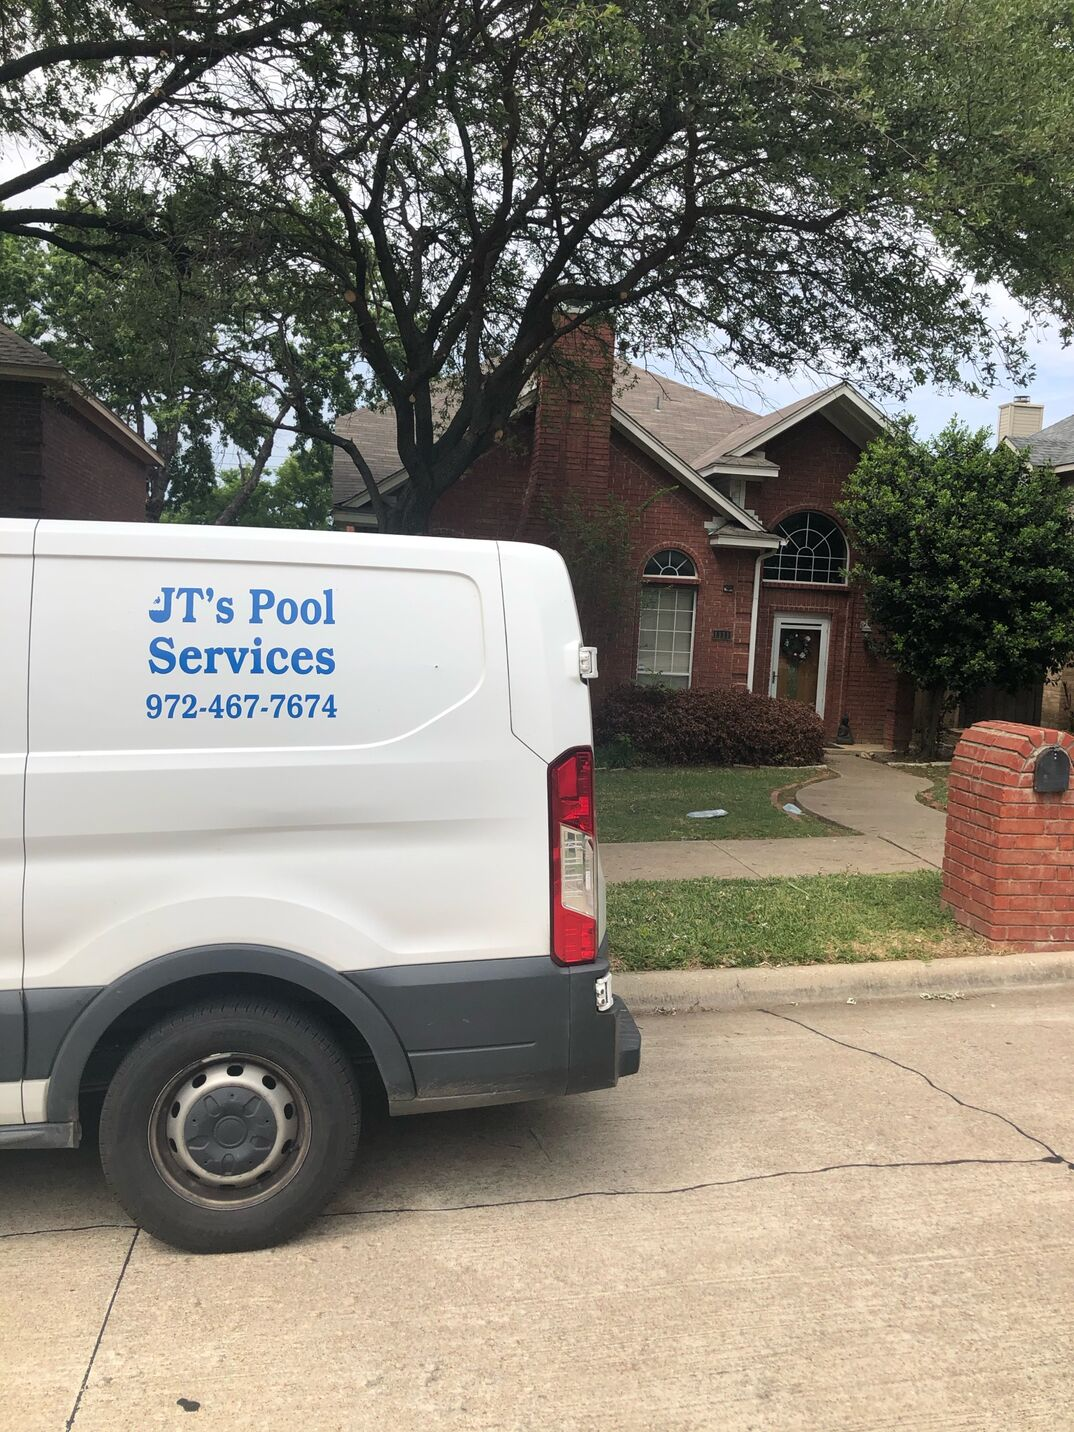 JT pool services van and equipment